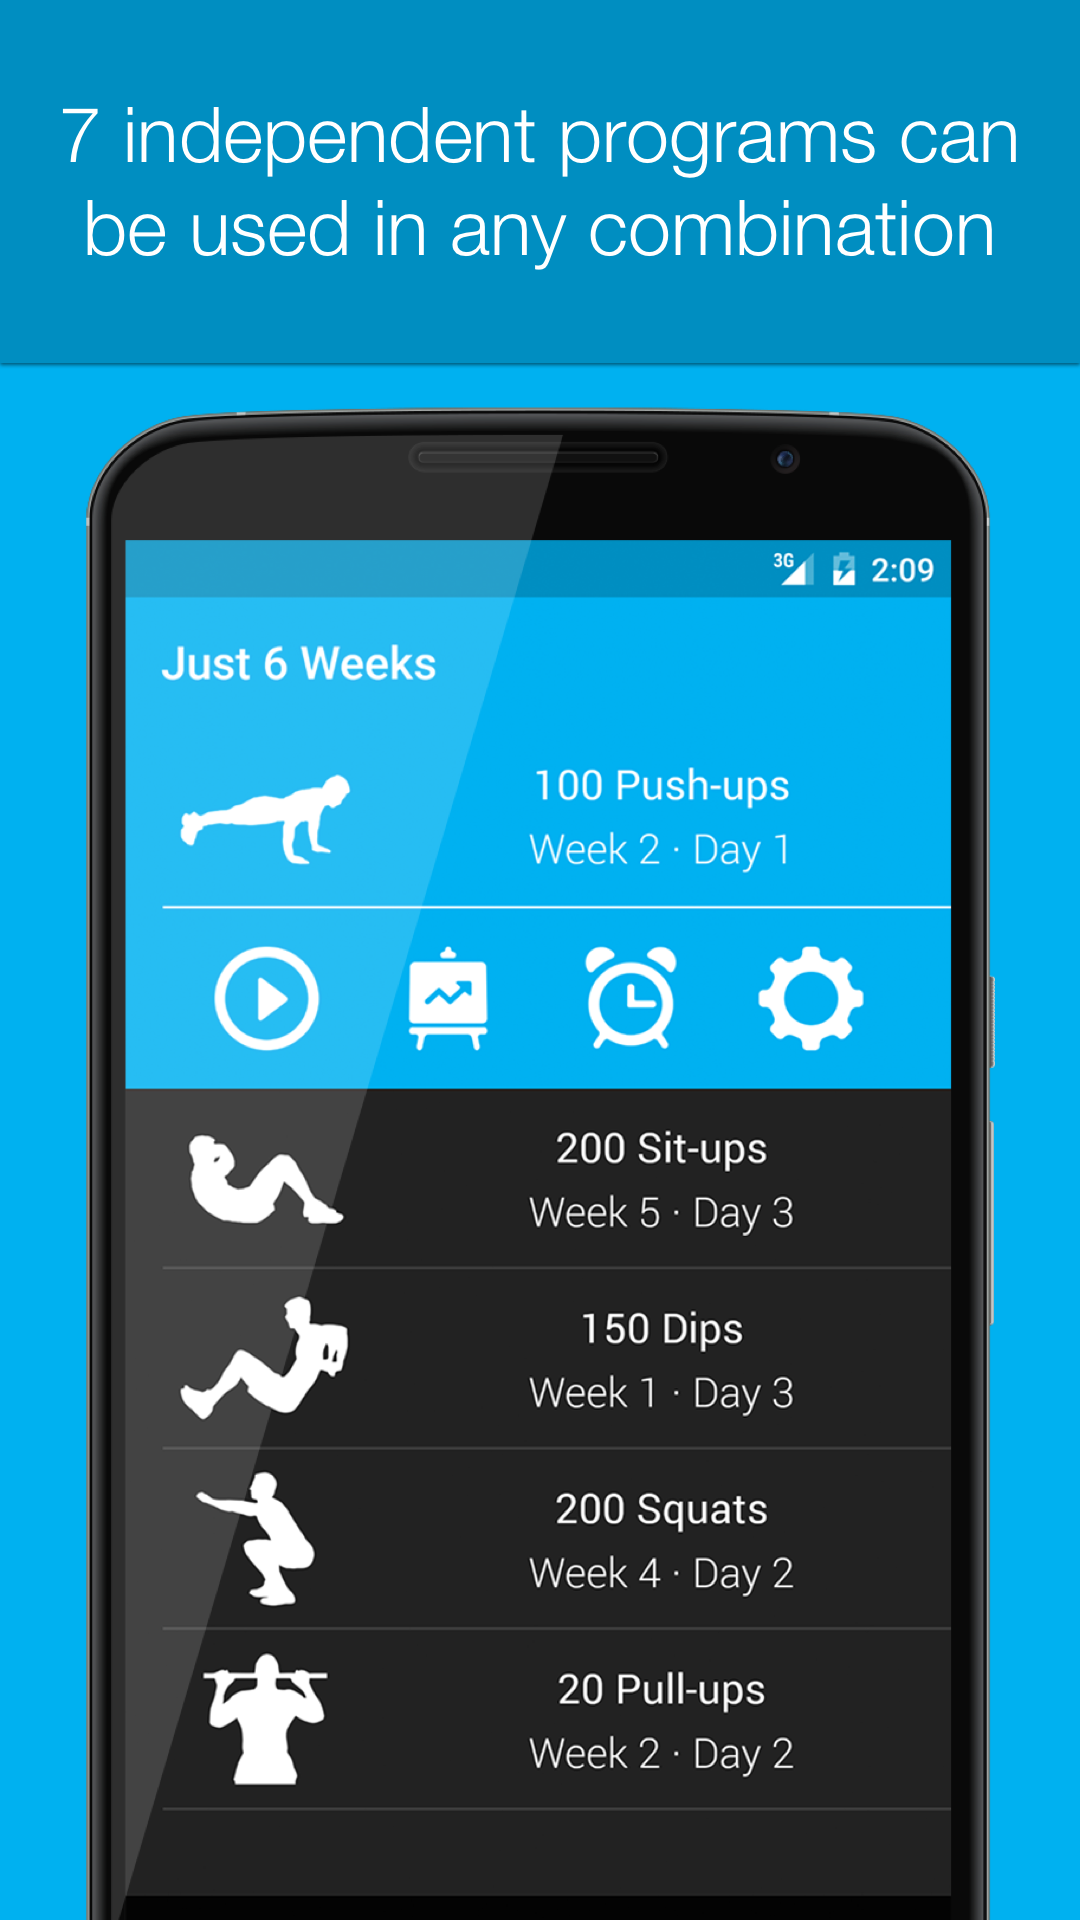 Amazon.com: Just 6 Weeks: Appstore for Android